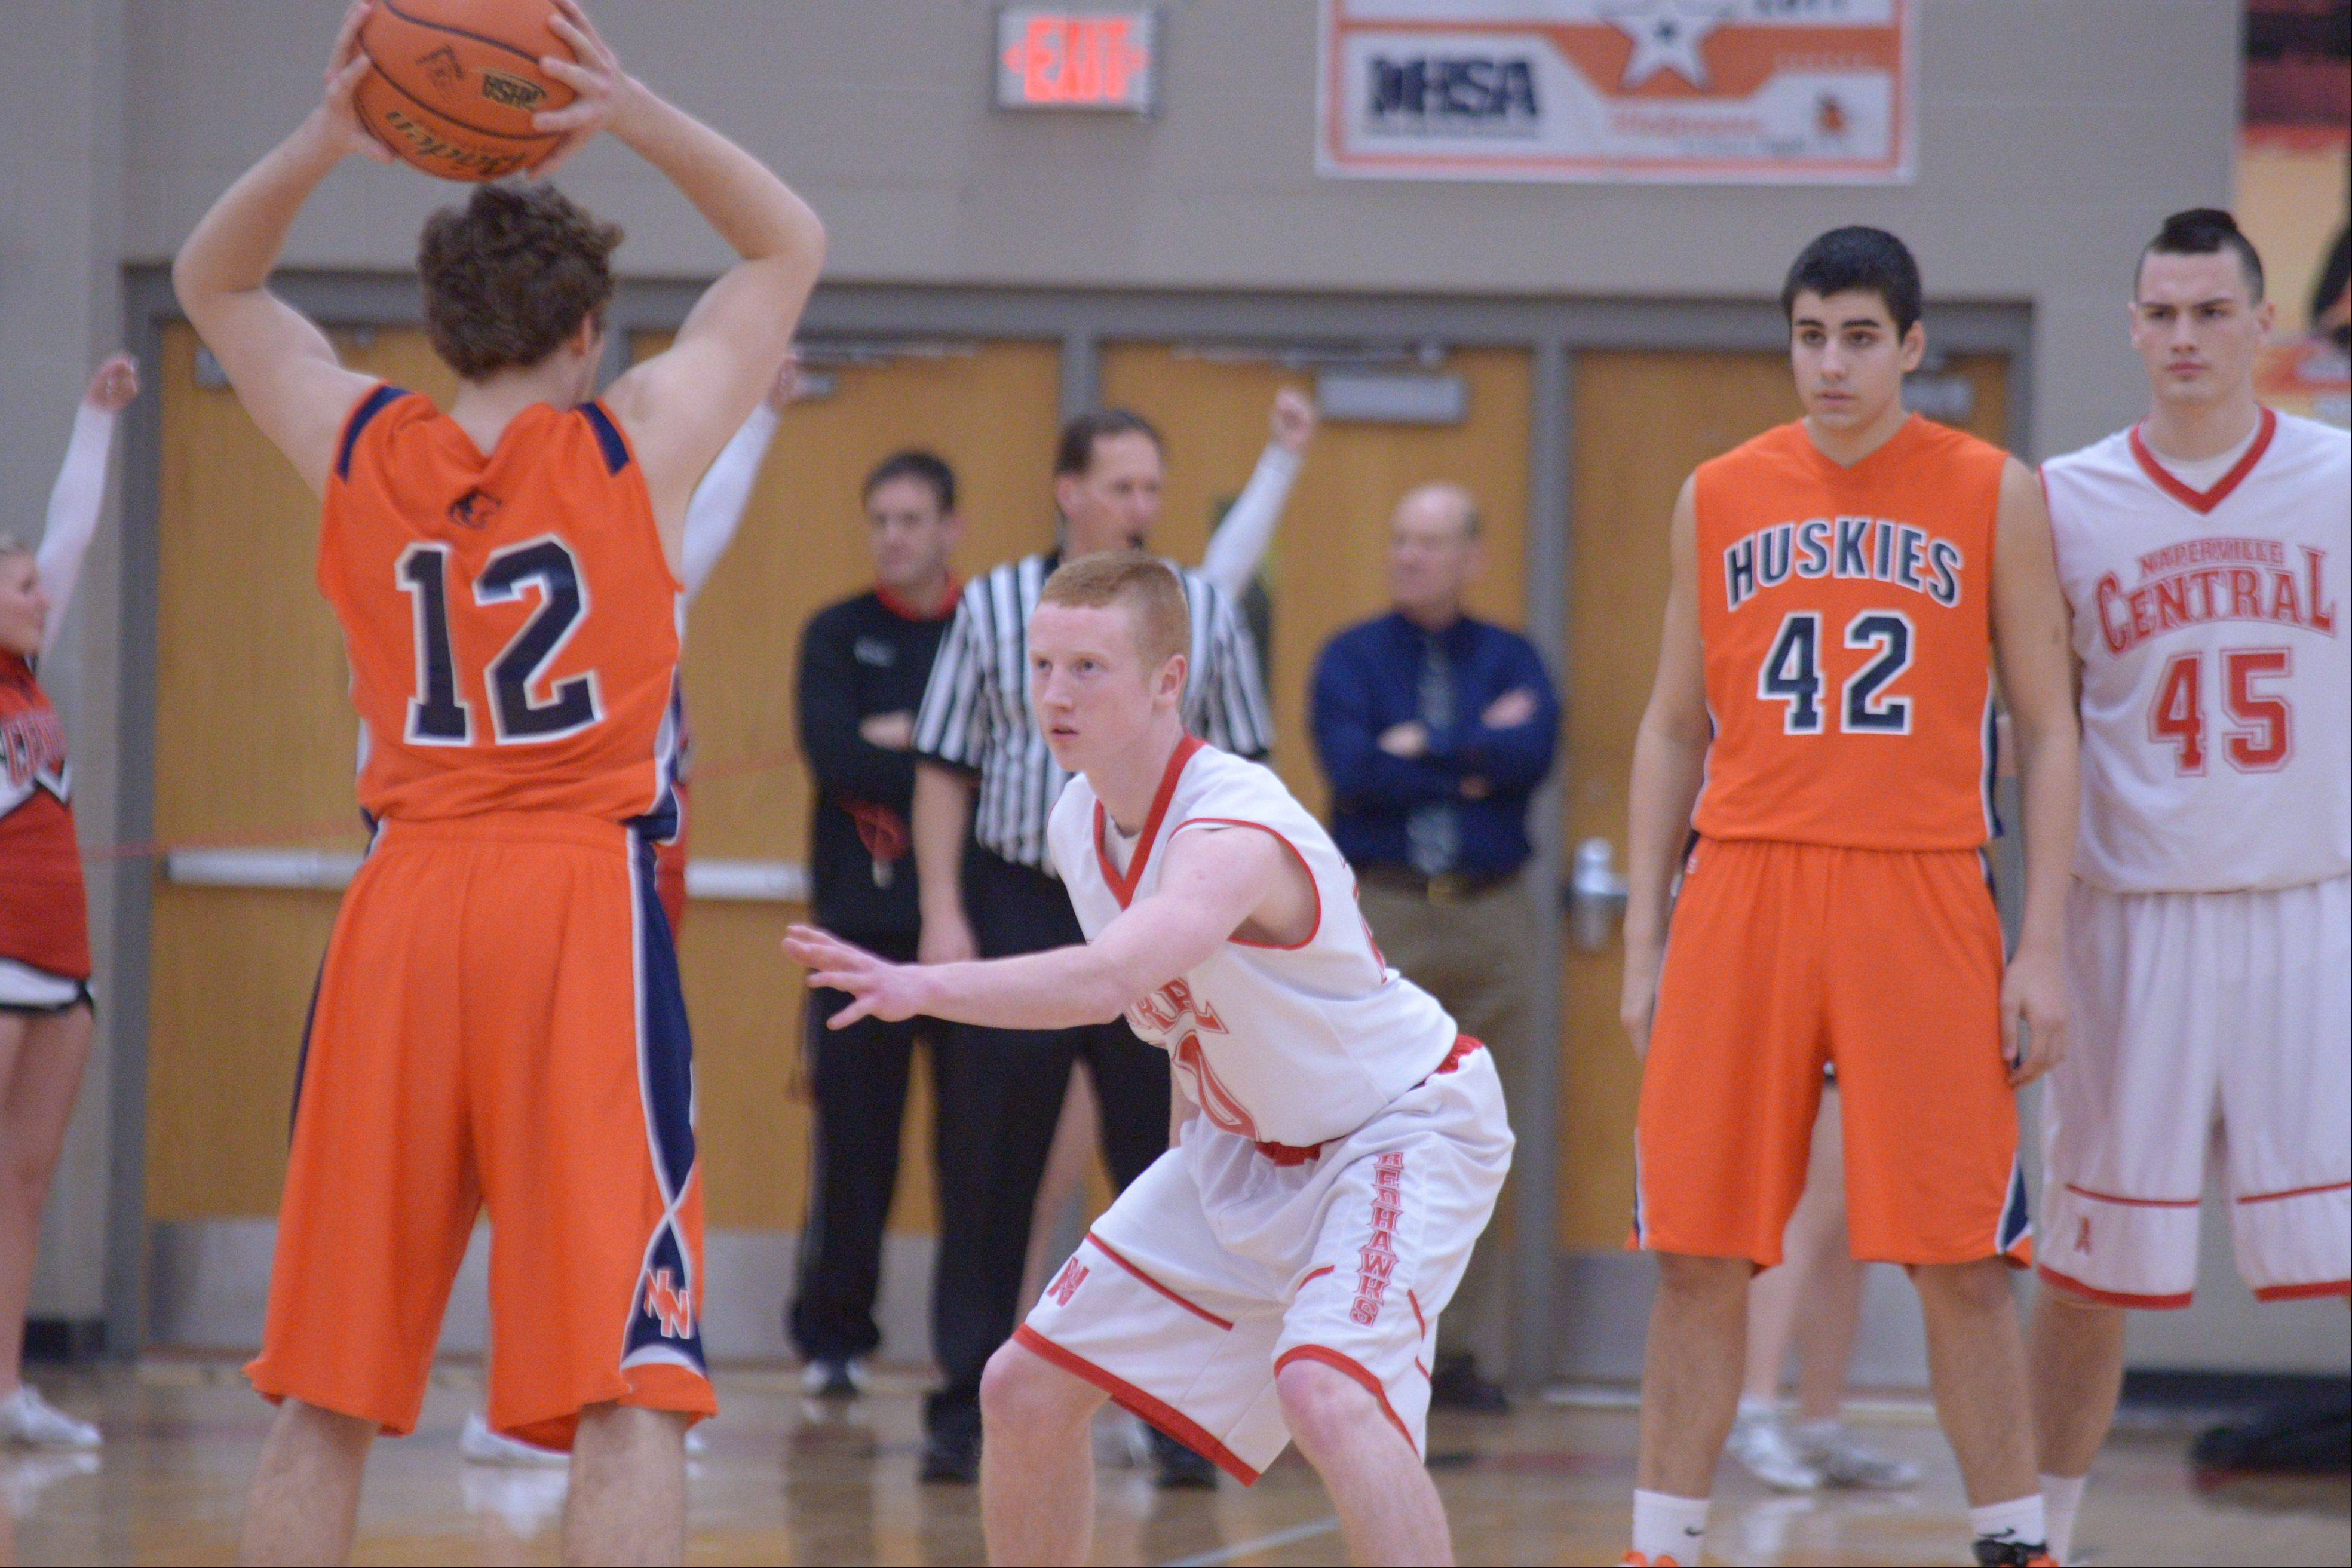 Naperville North played Naperville Central Thursday night for Class 4A boys basketball regional semifinals at Benet Academy in Lisle